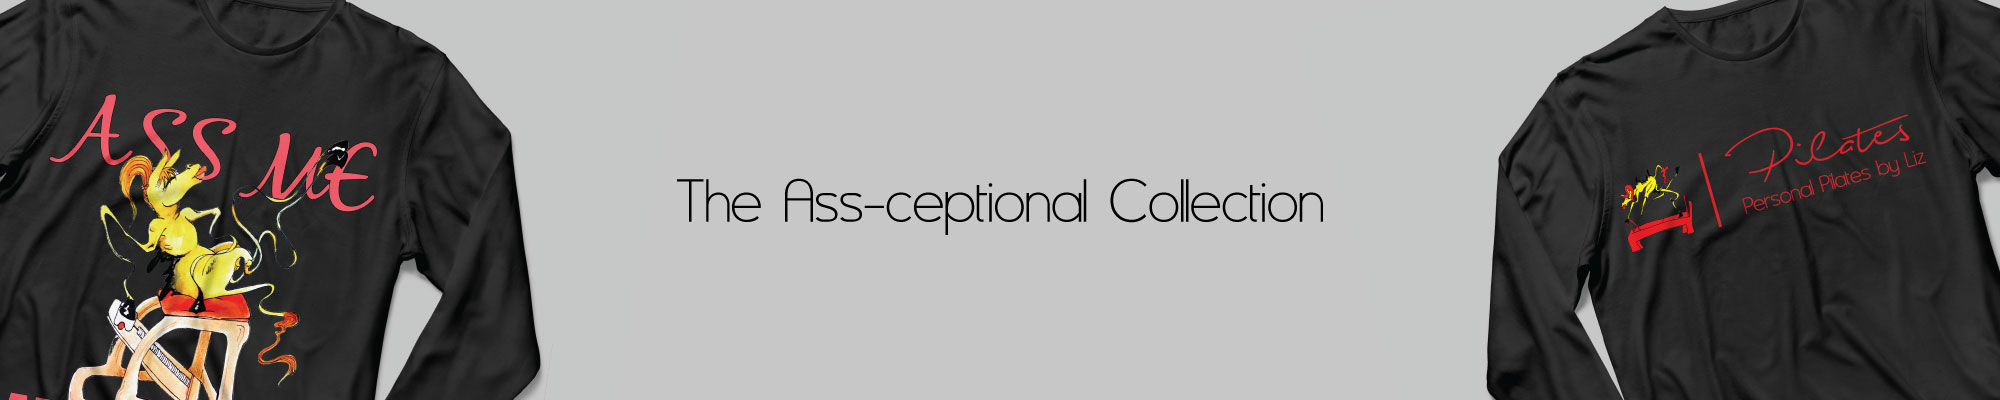 Ass-ceptional collection Banner-Image.jpg